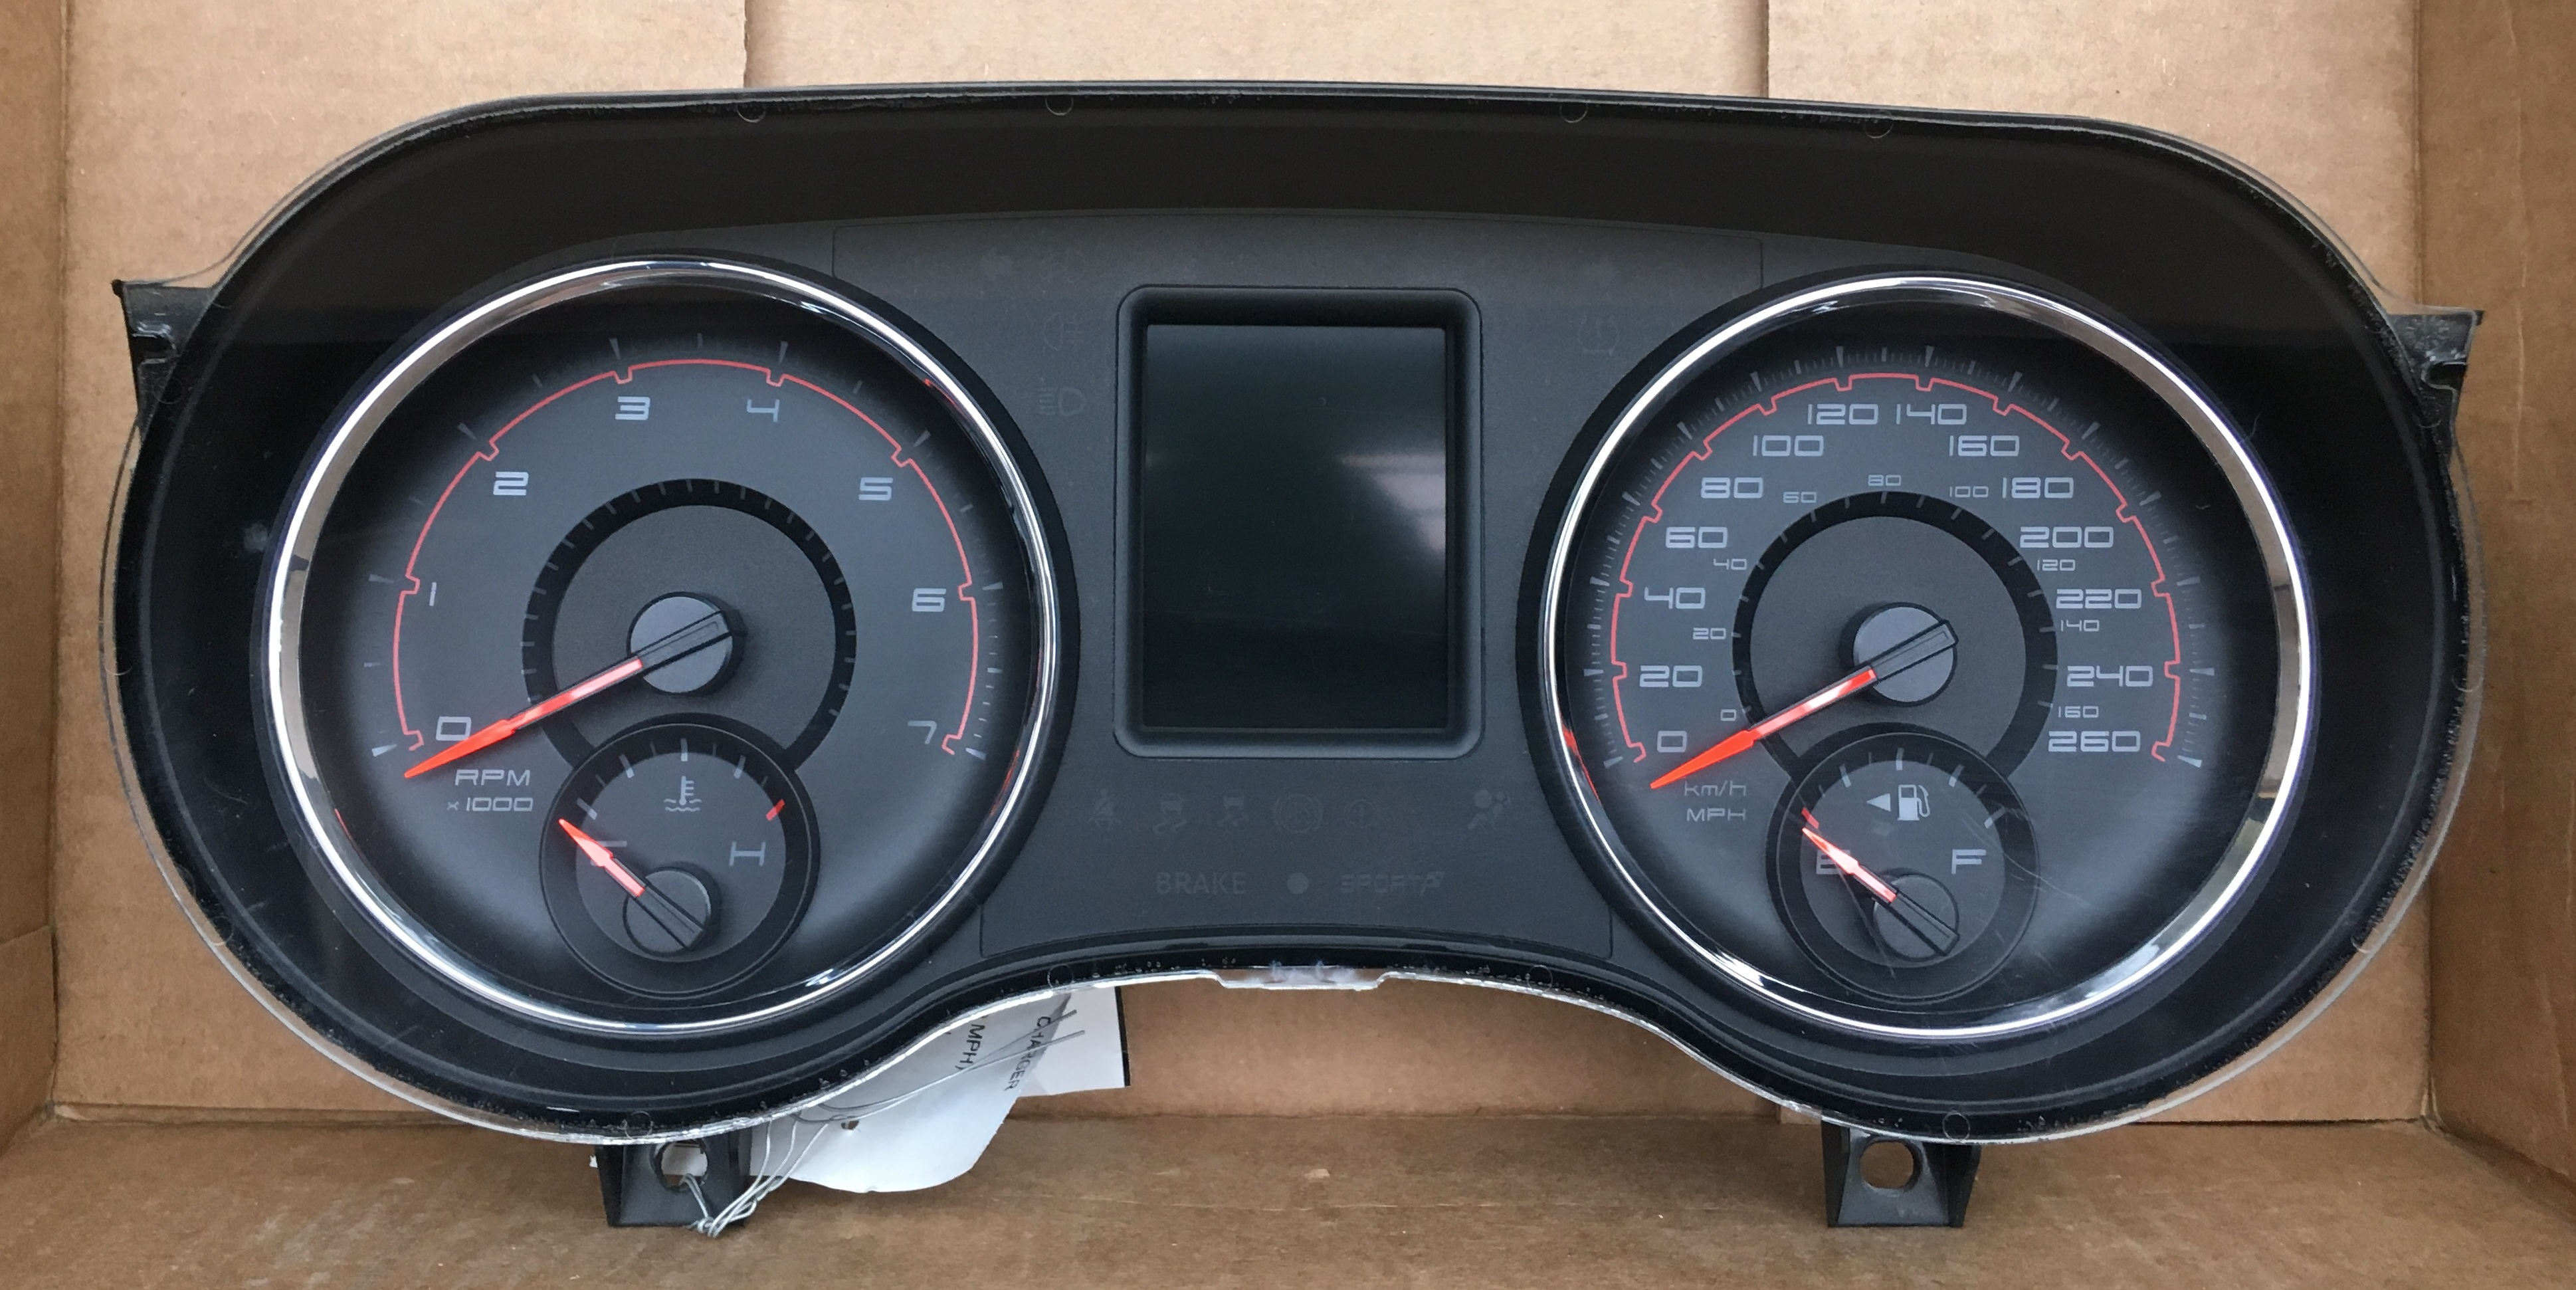 2014 Dodge Charger Used Dashboard Instrument Cluster For Sale Km H Dashboard Instrument Cluster